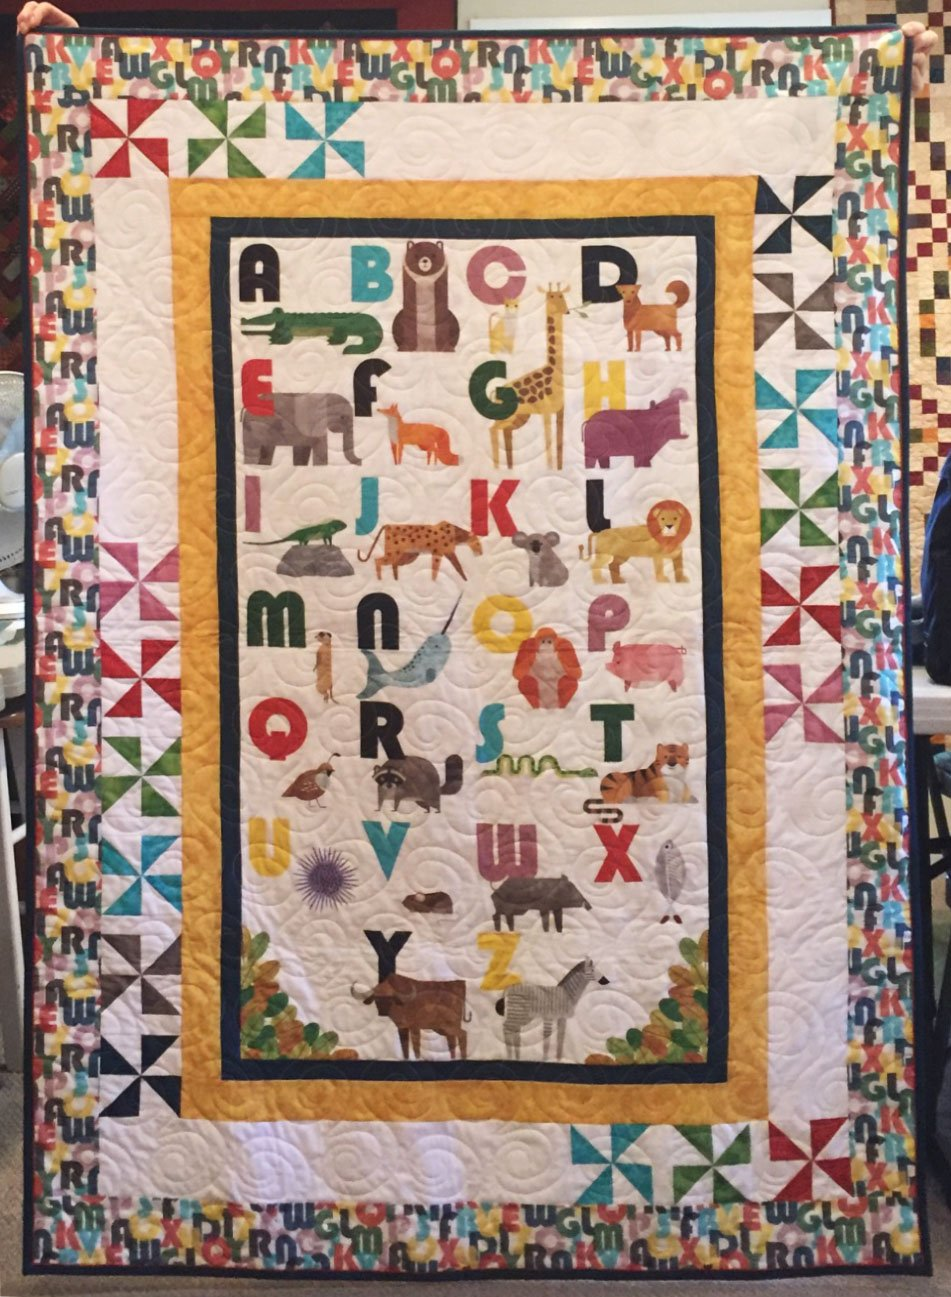 ABC Animals Quilt Kit